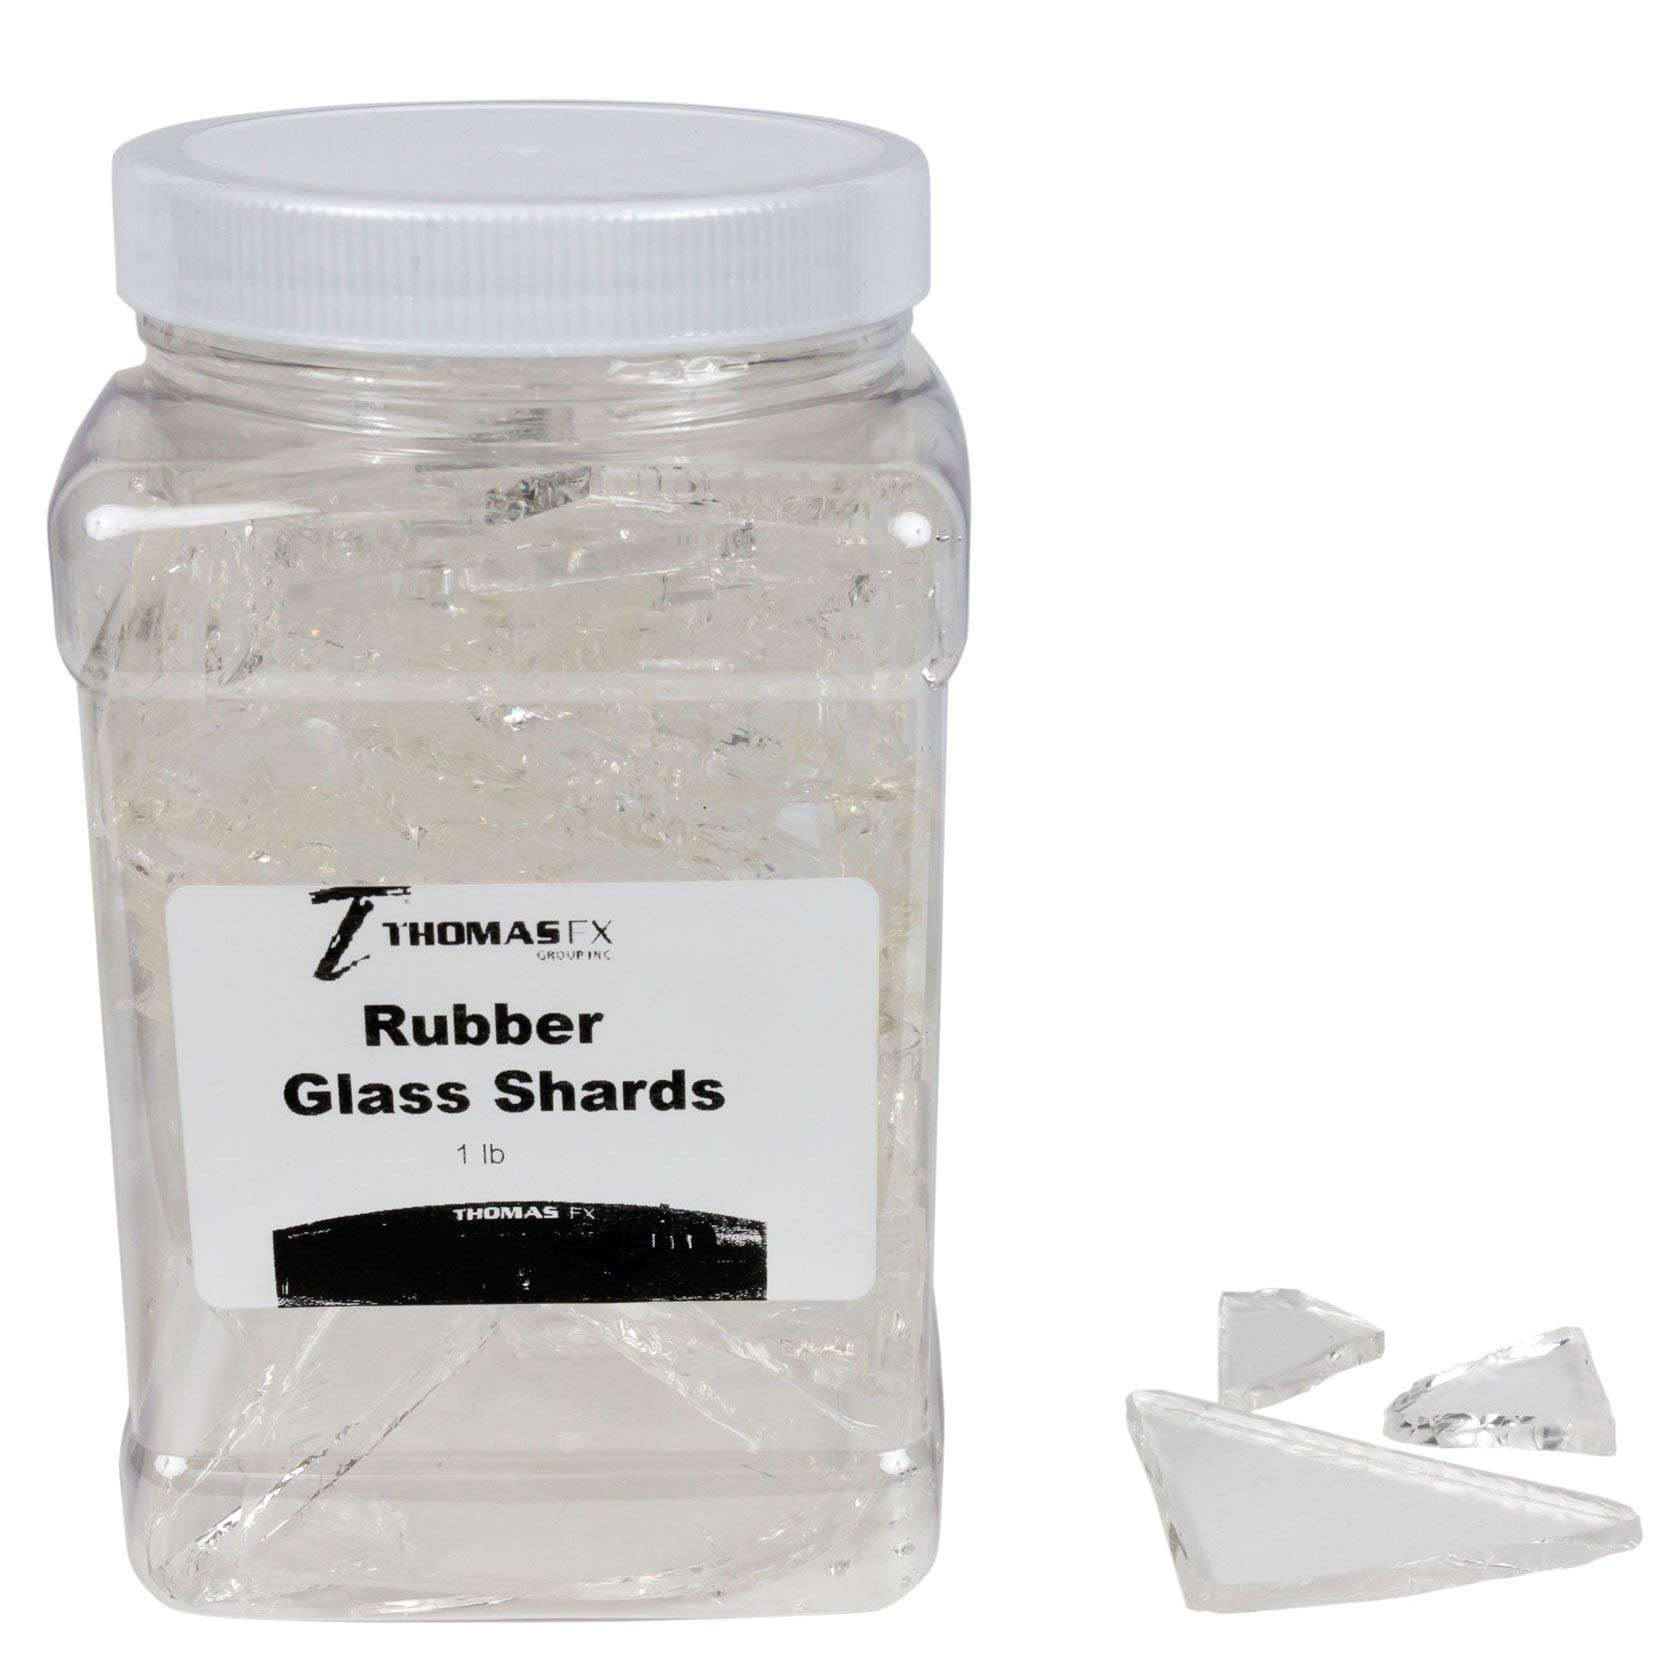 Rubber Tempered Glass Shards, Professional Quality Fake Glass, or Movie Glass Random Pieces - 1 lb.